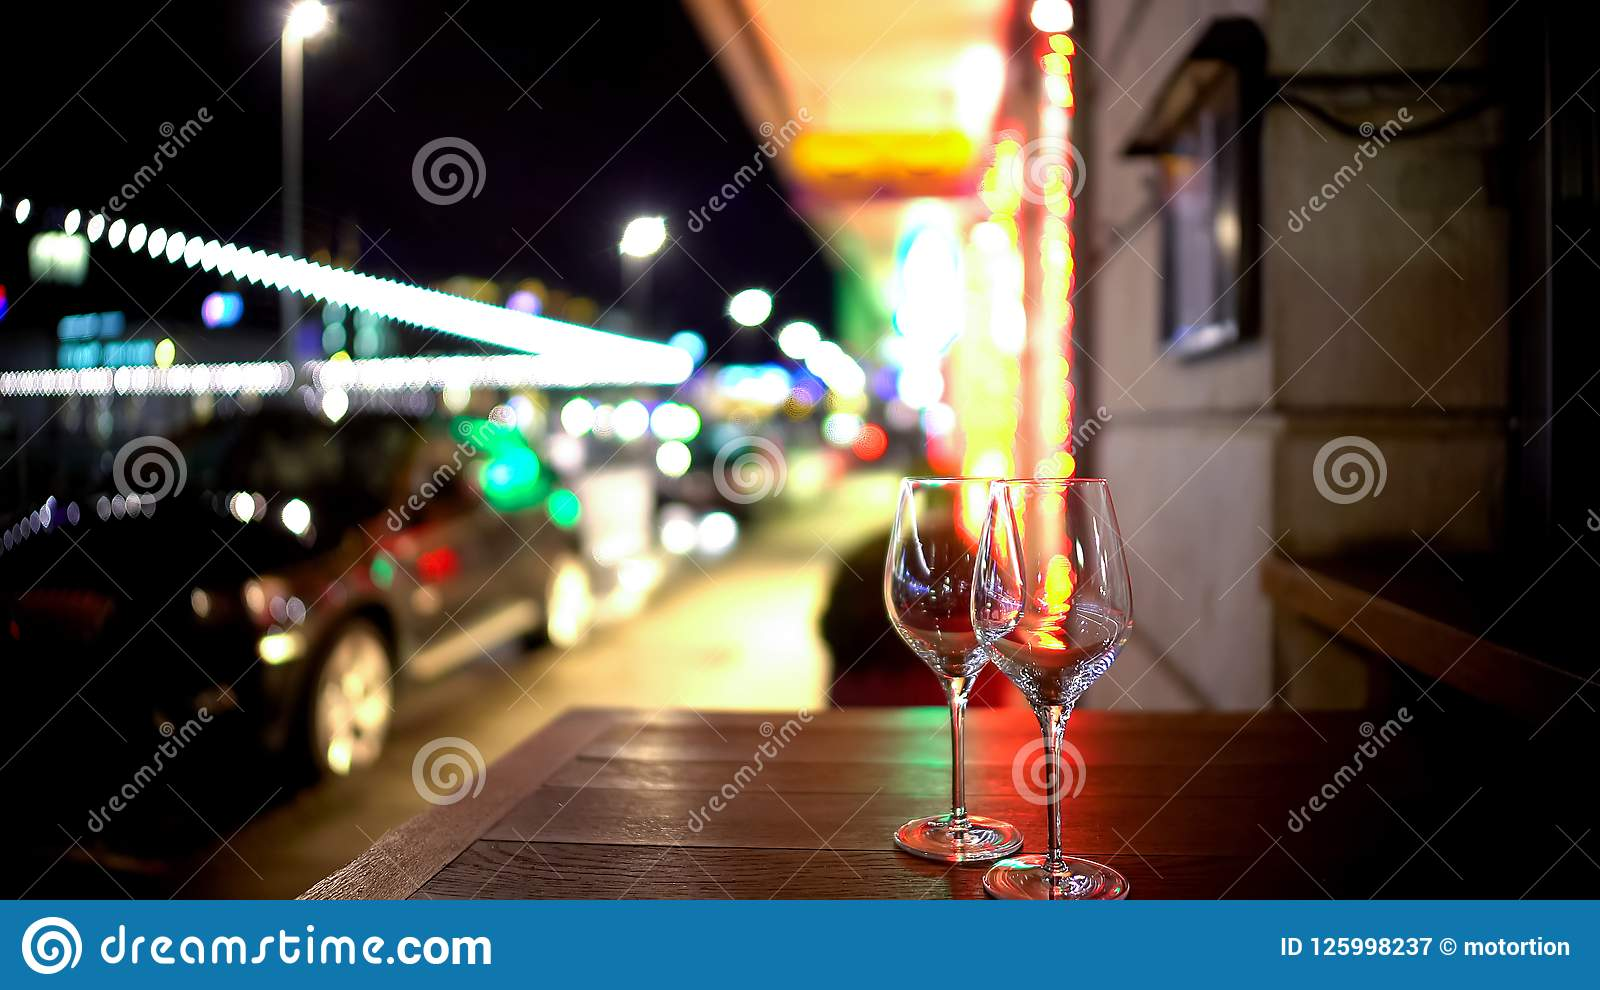 Two glasses on table in street cafe, romantic evening, spontaneous acquaintance